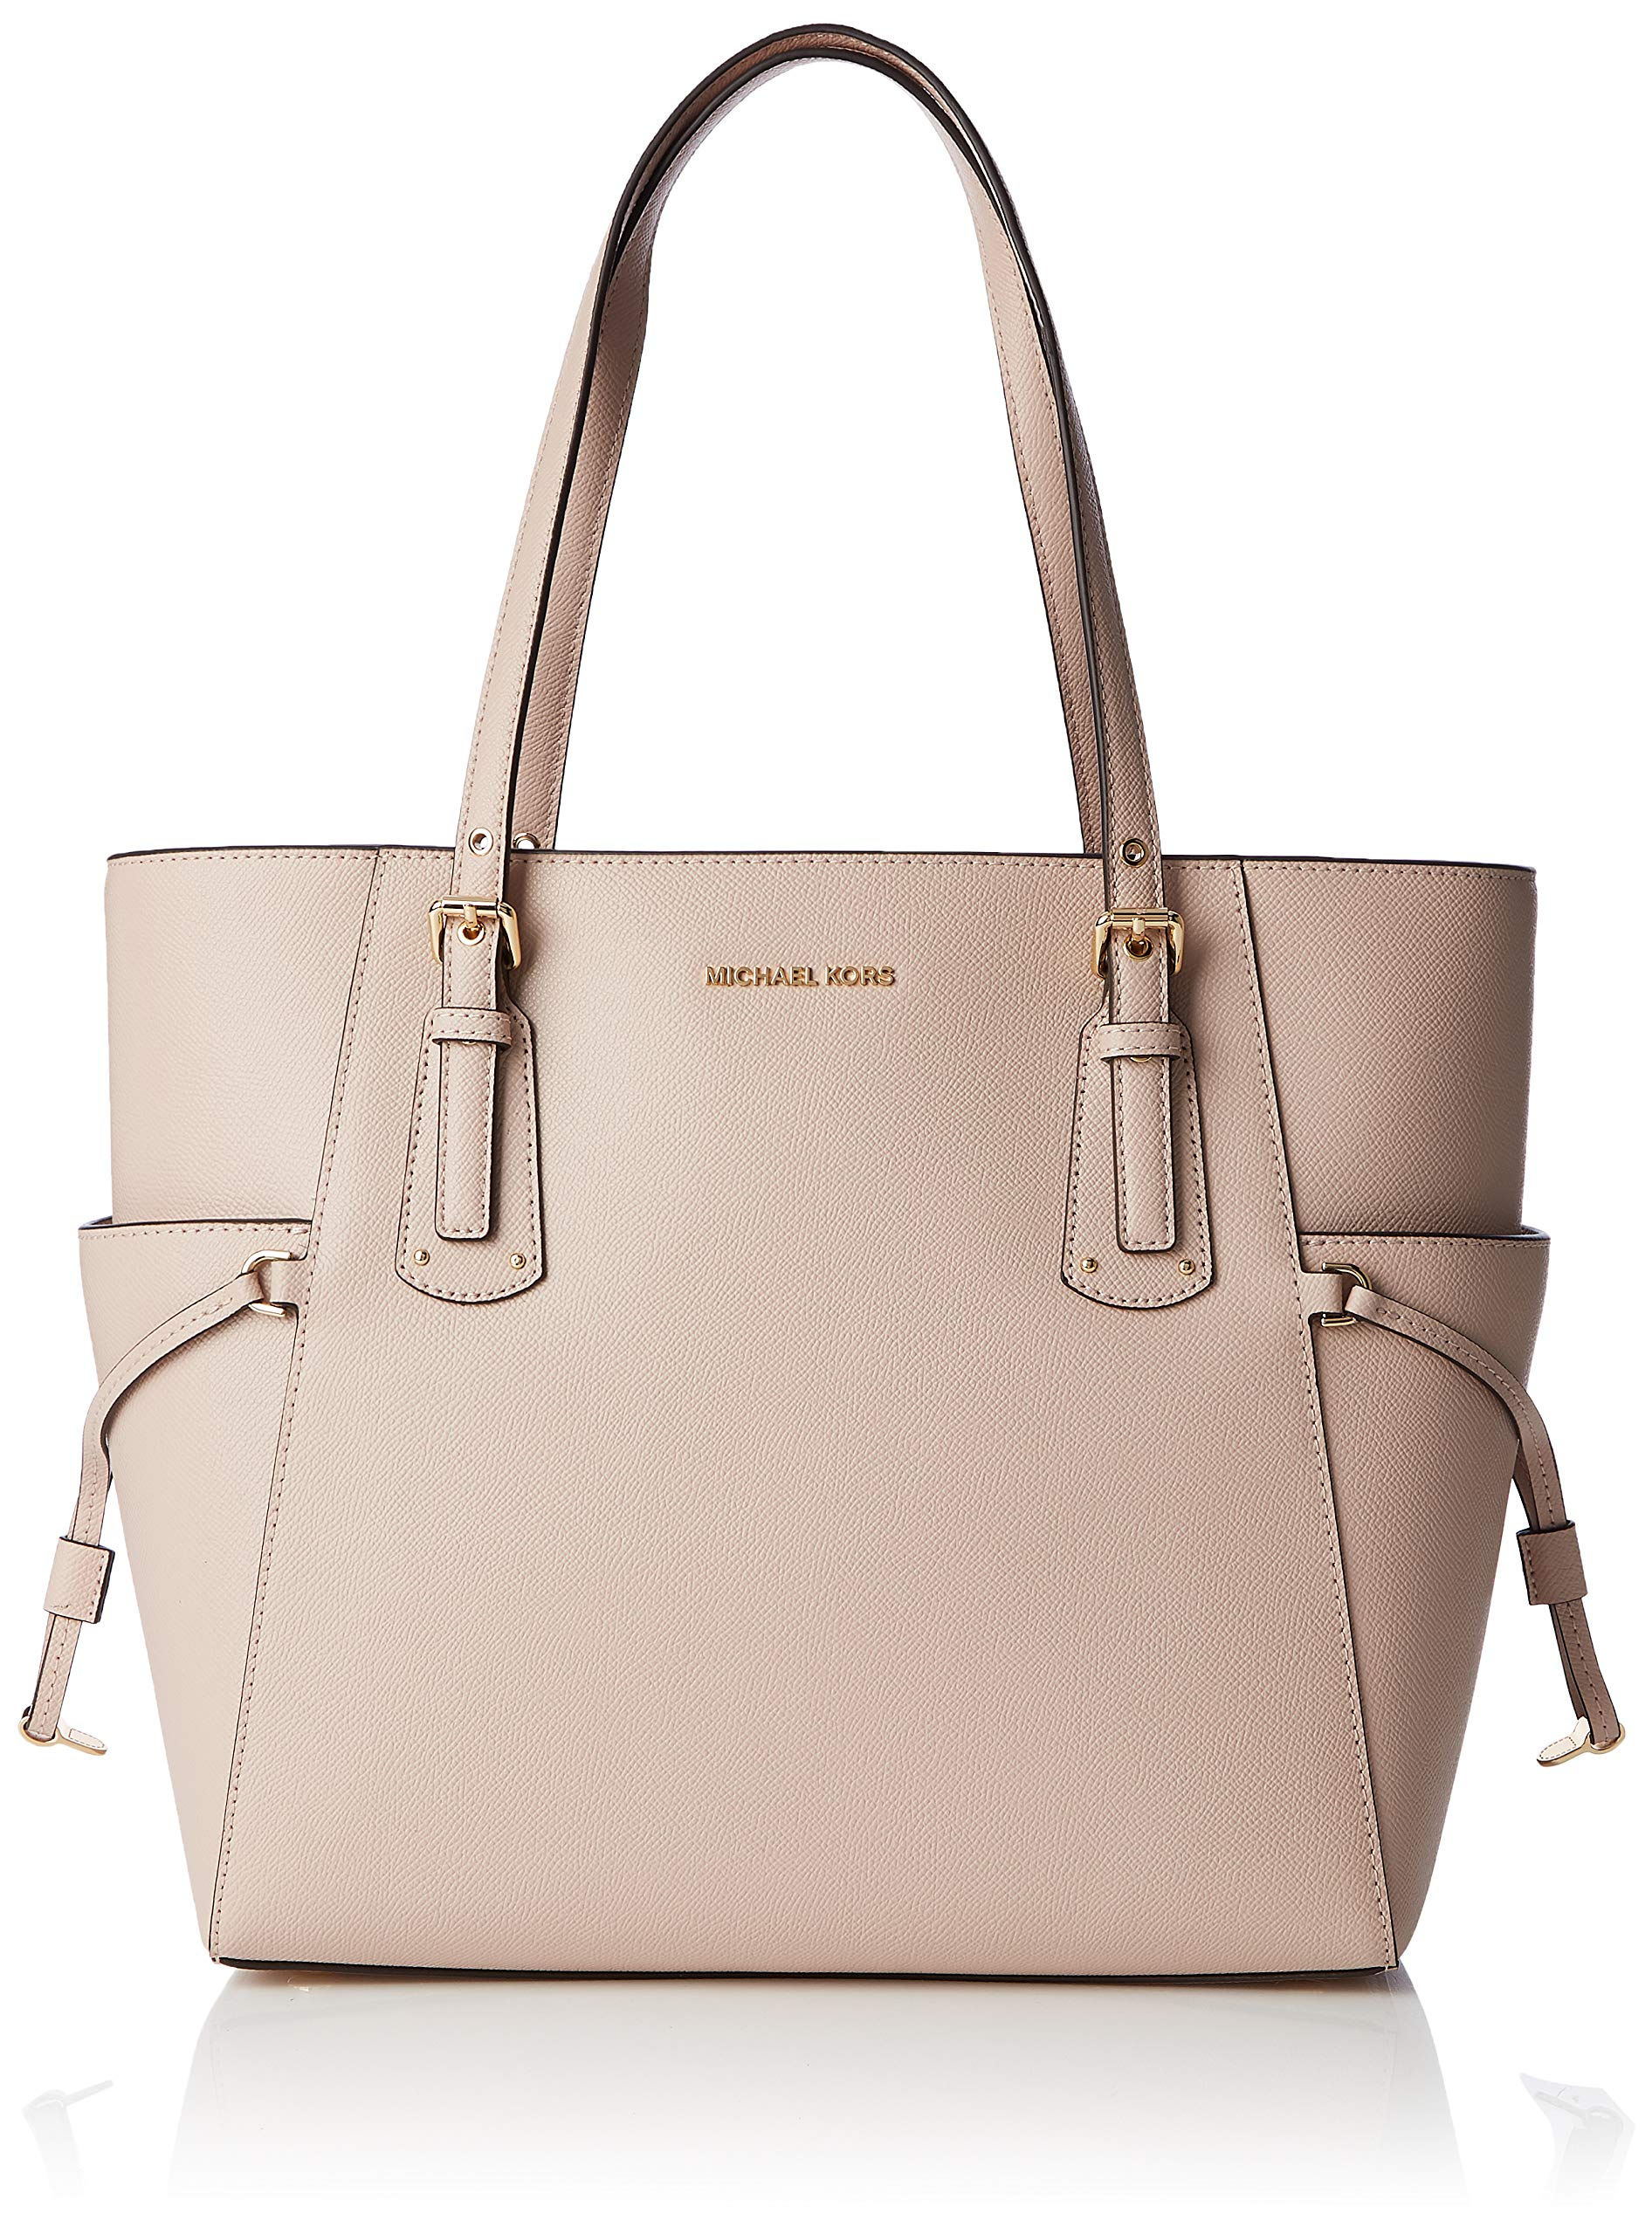 Michael Kors Voyager Textured Crossgrain Leather Tote- Soft Pink